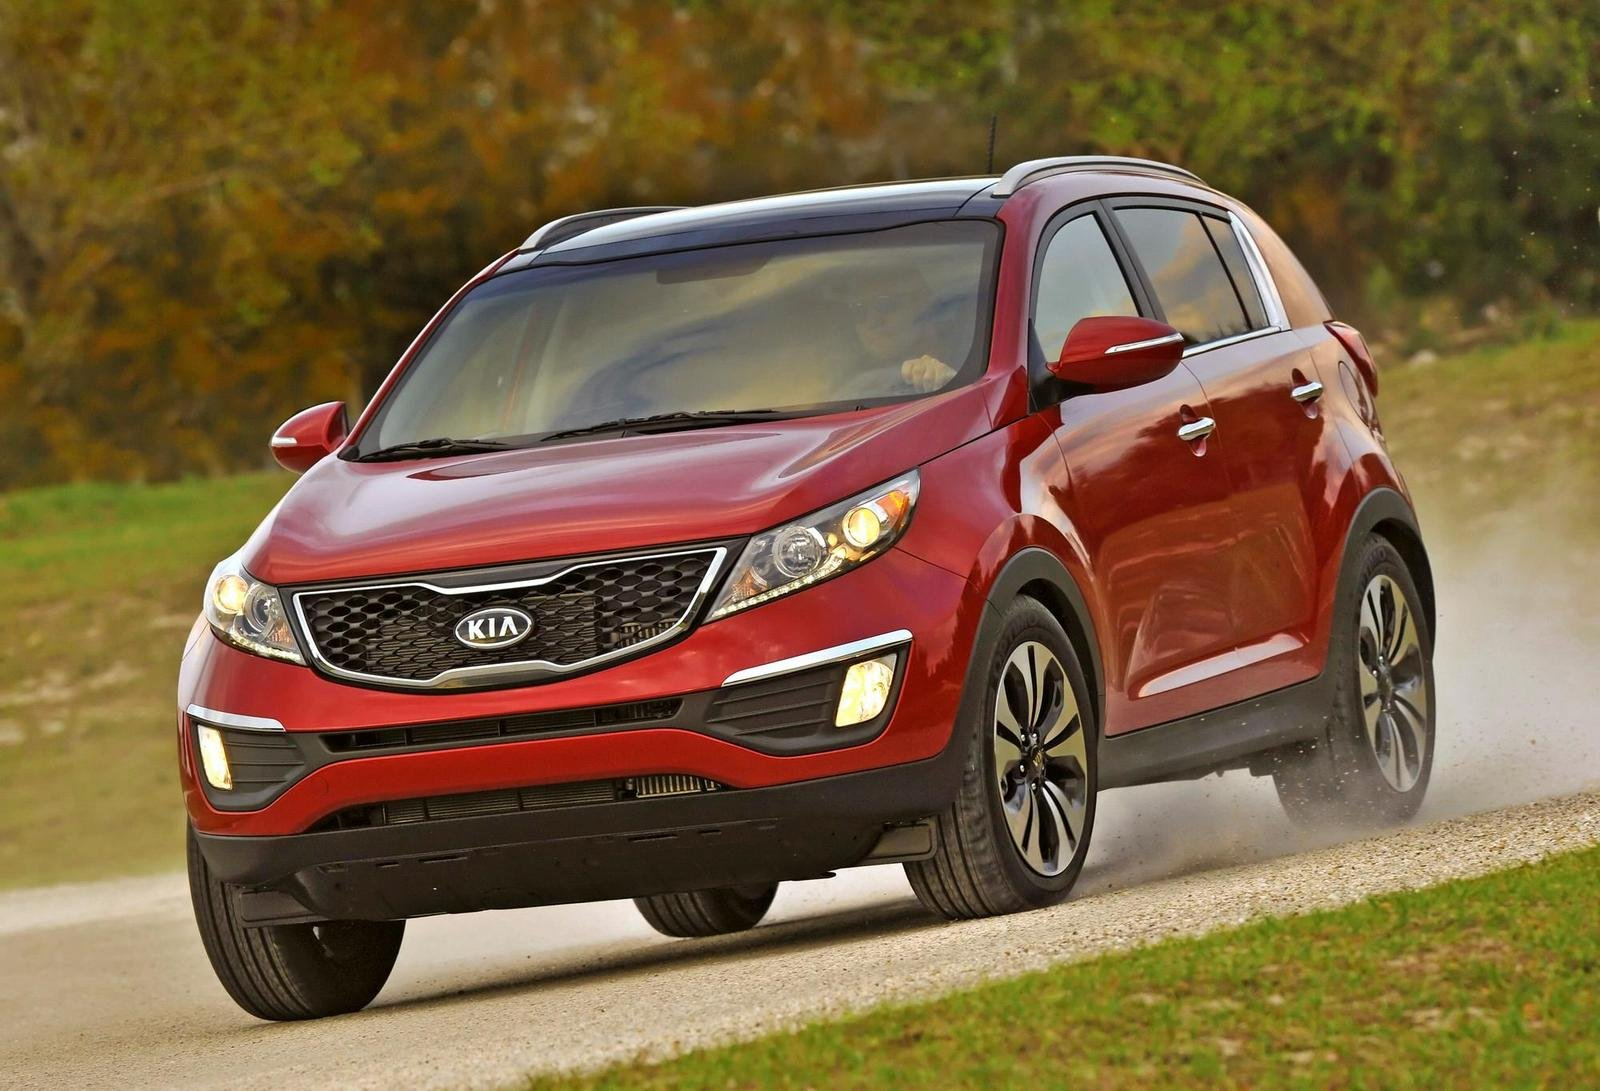 2011 kia sportage sx turbo review top speed. Black Bedroom Furniture Sets. Home Design Ideas